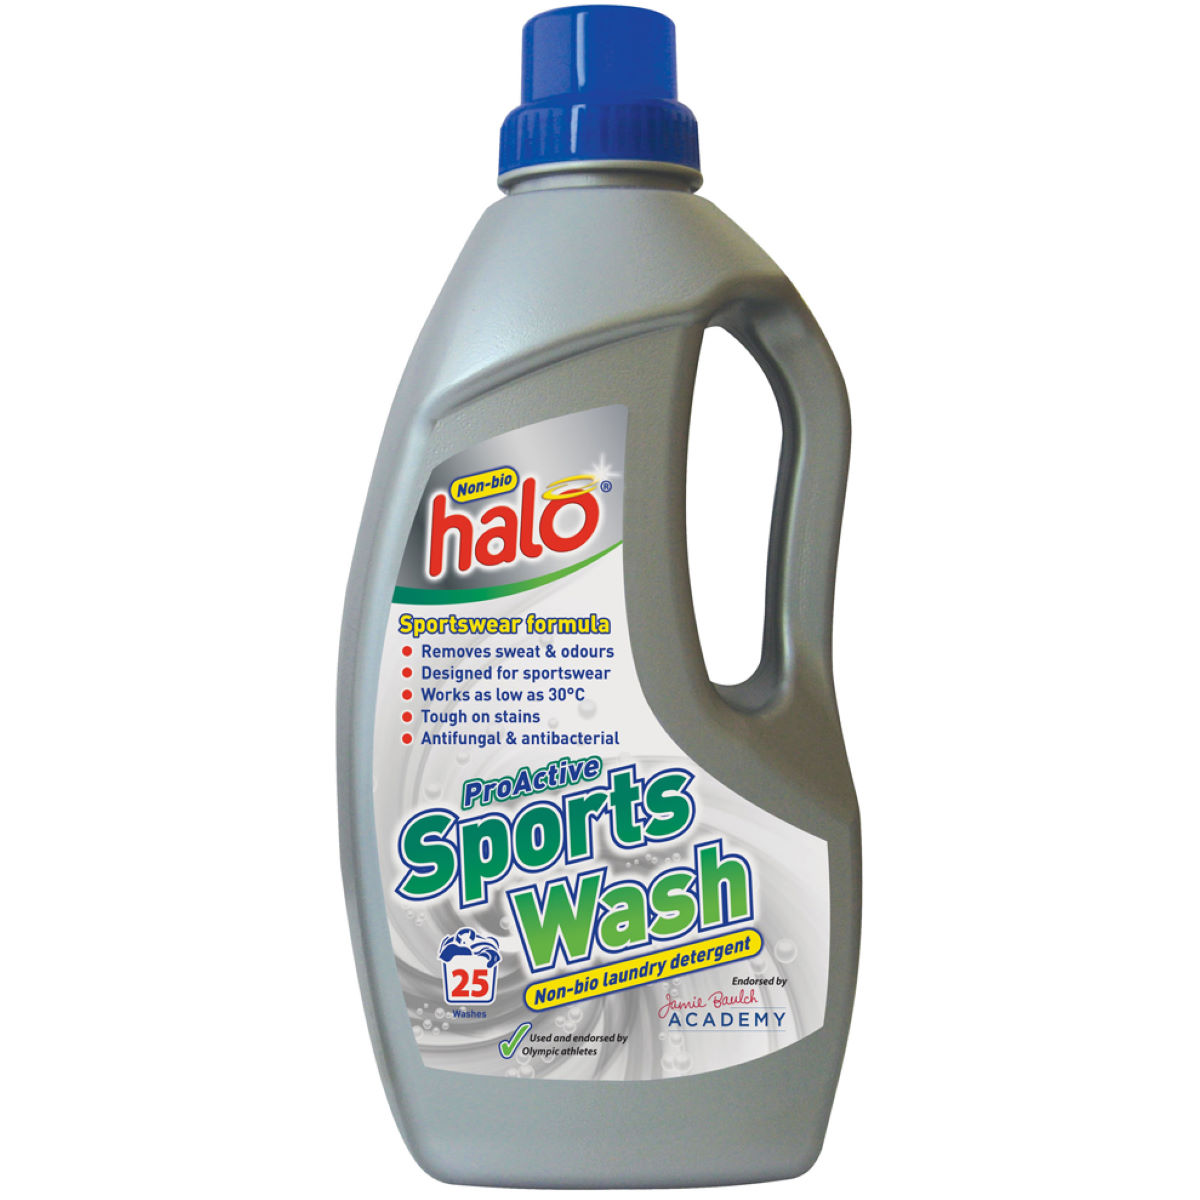 Halo Proactive Sports Wash Laundry Detergent - 1 Litre